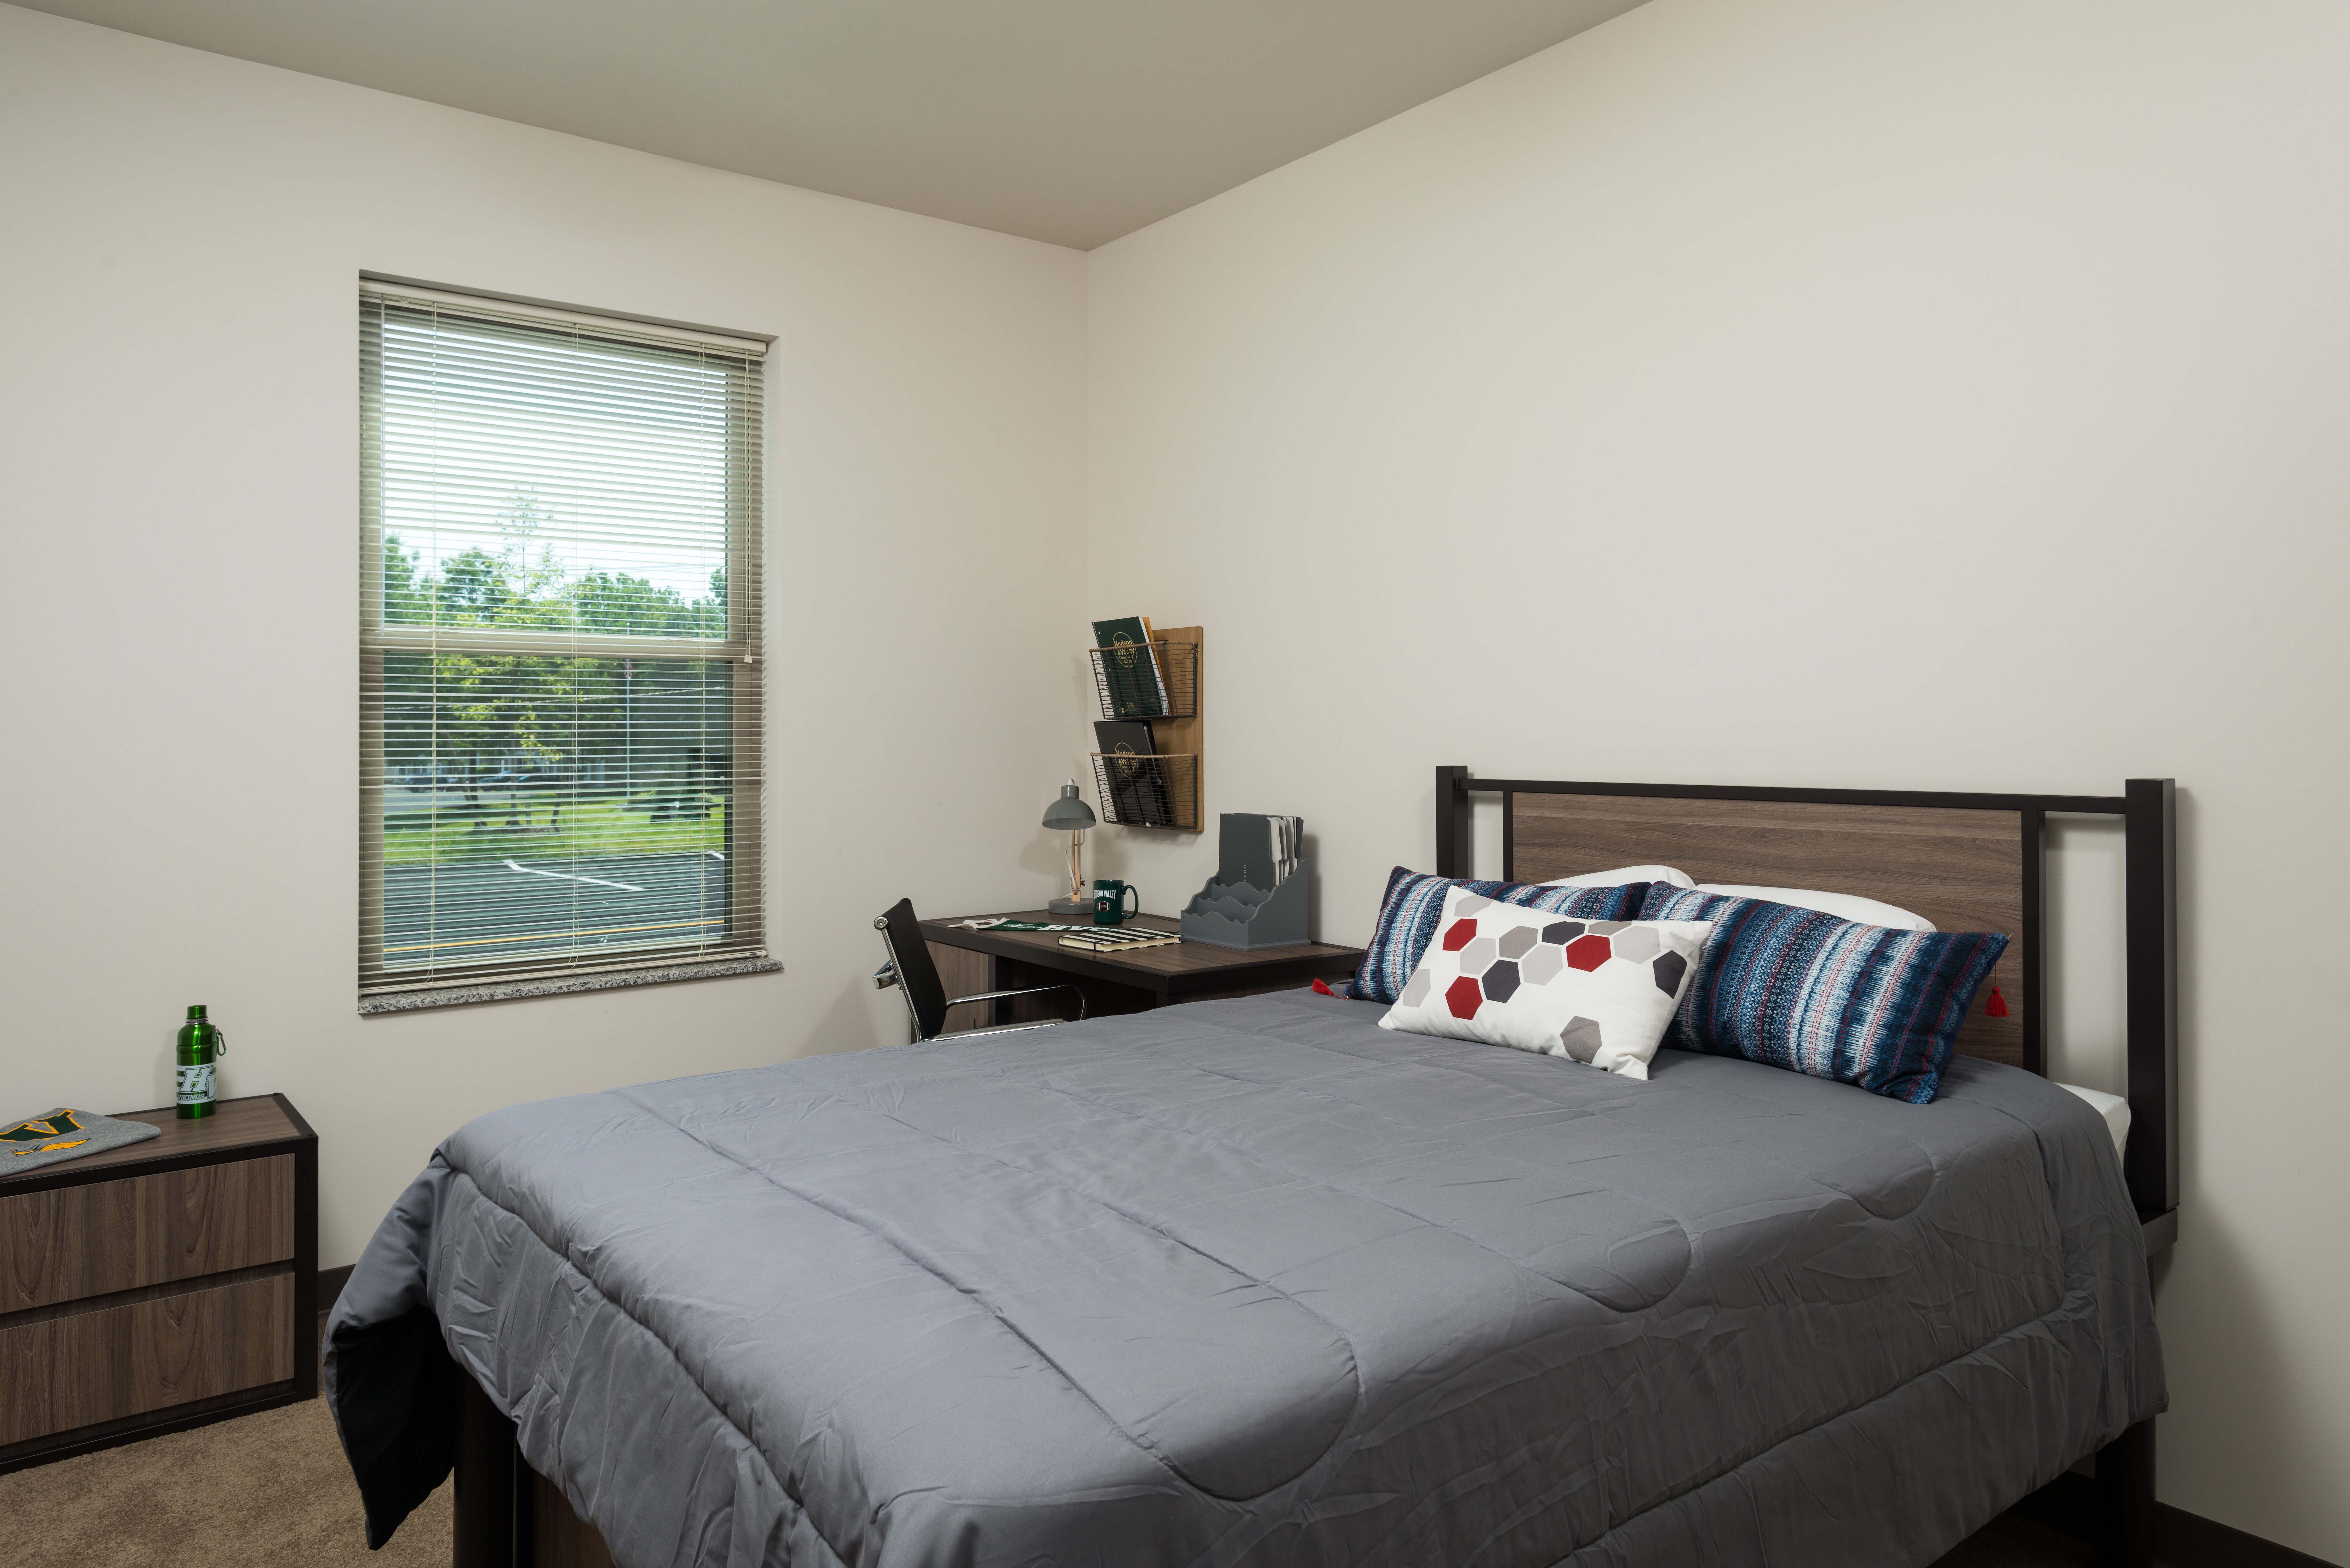 Suites At Hudson Valley Community College Lechase